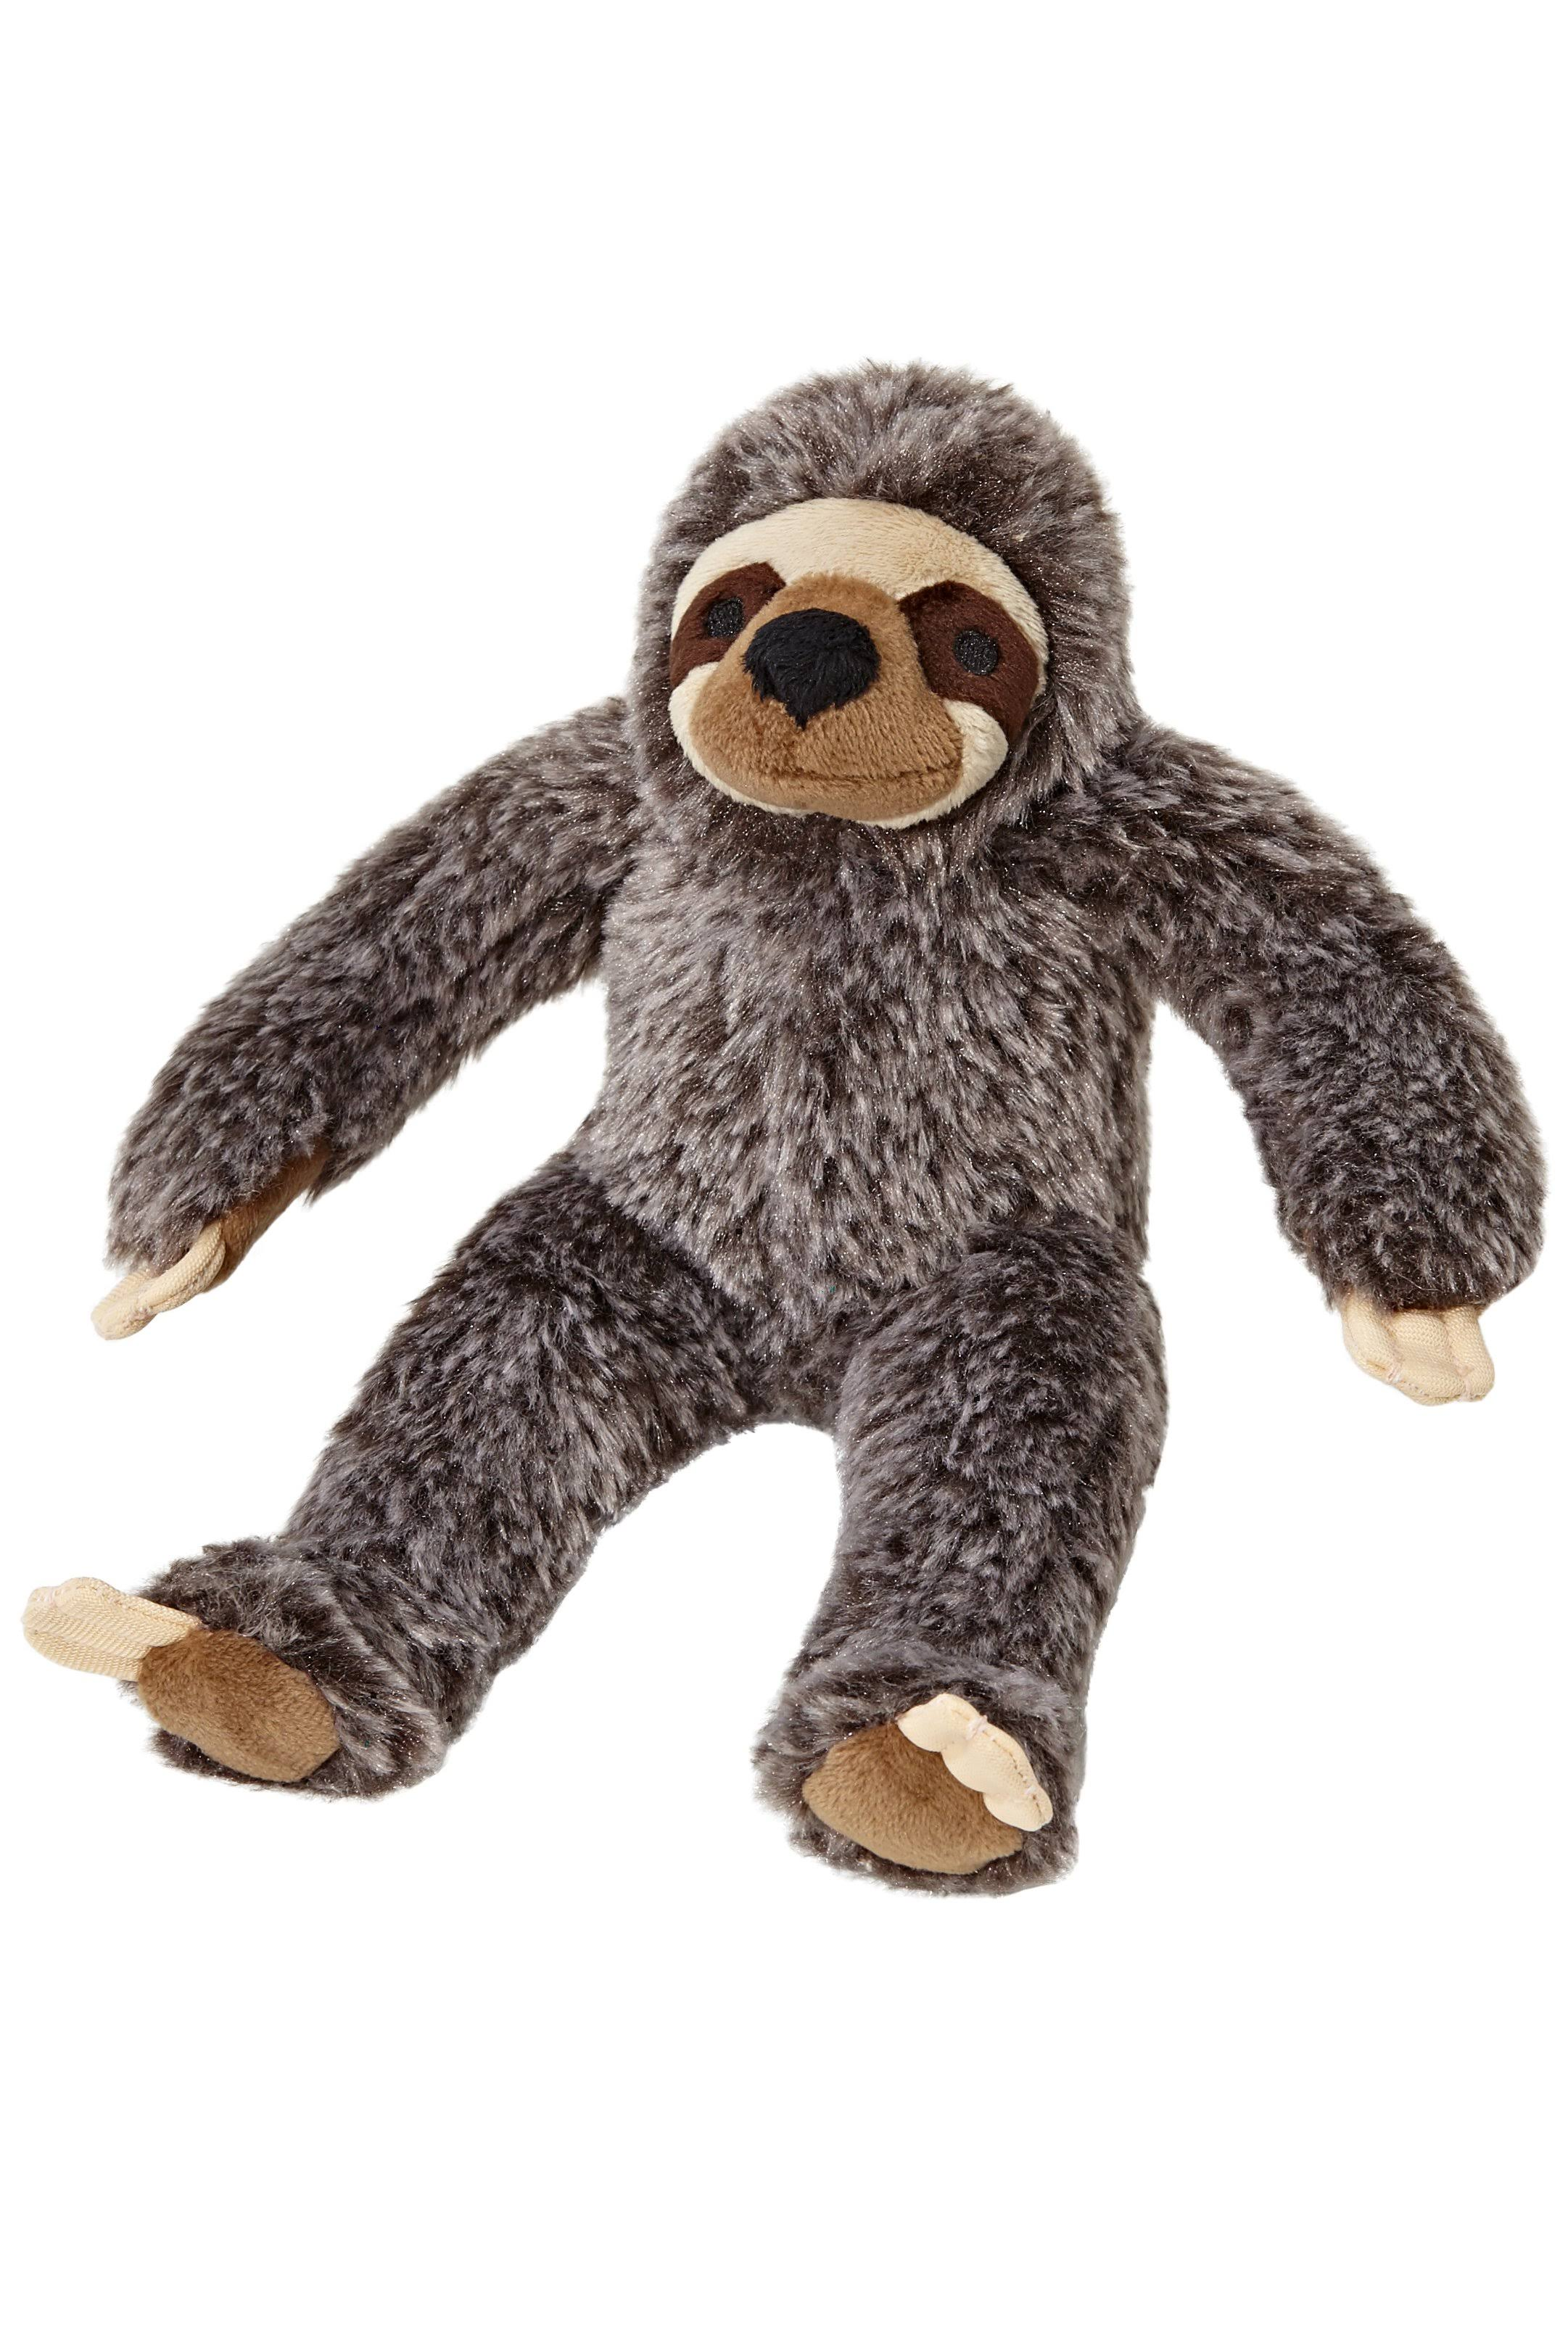 "Fluff & Tuff Sonny Sloth 9"" Dog Toy"